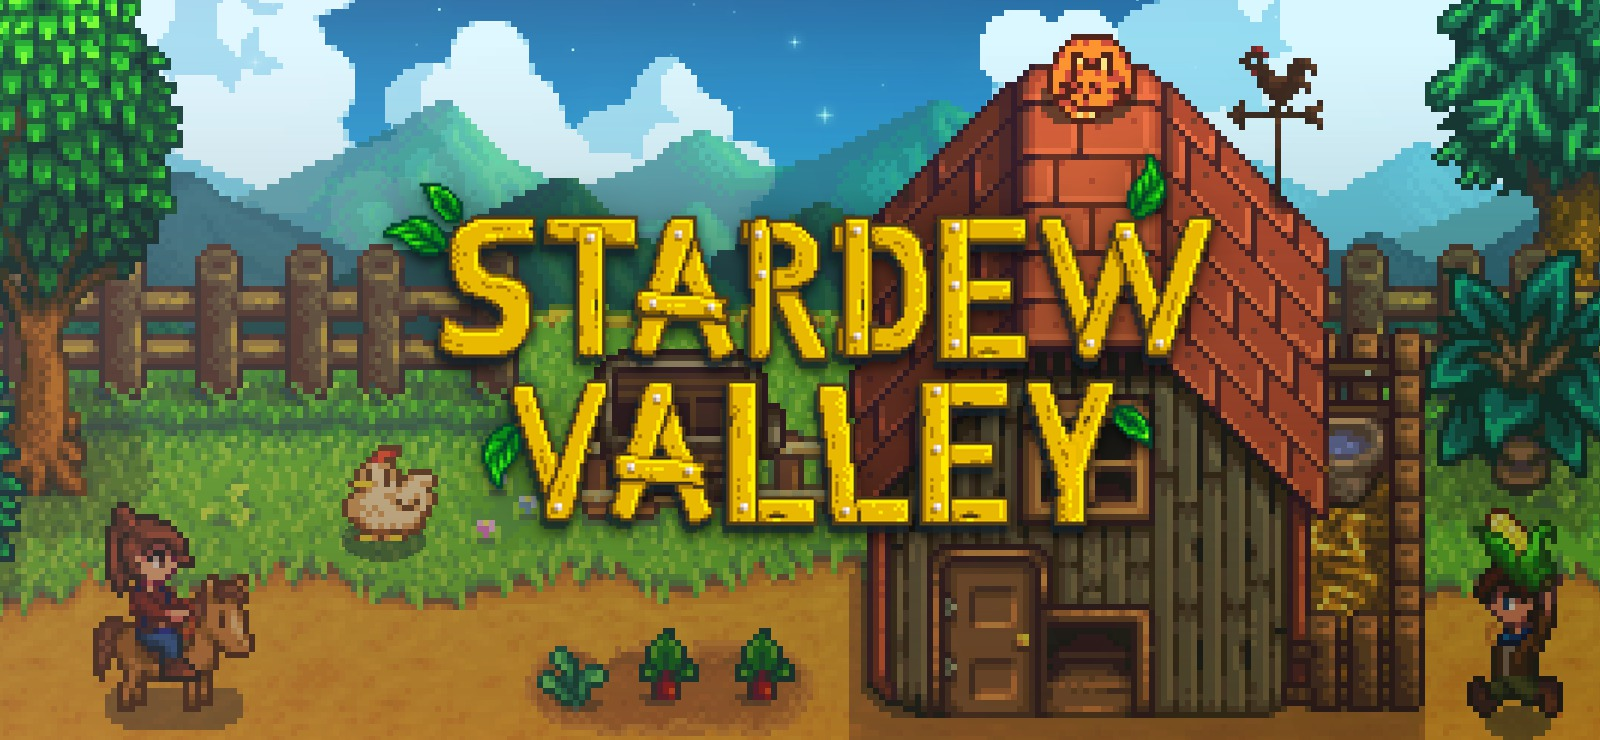 Stardew Valley telecharger gratuit de PC et Torrent